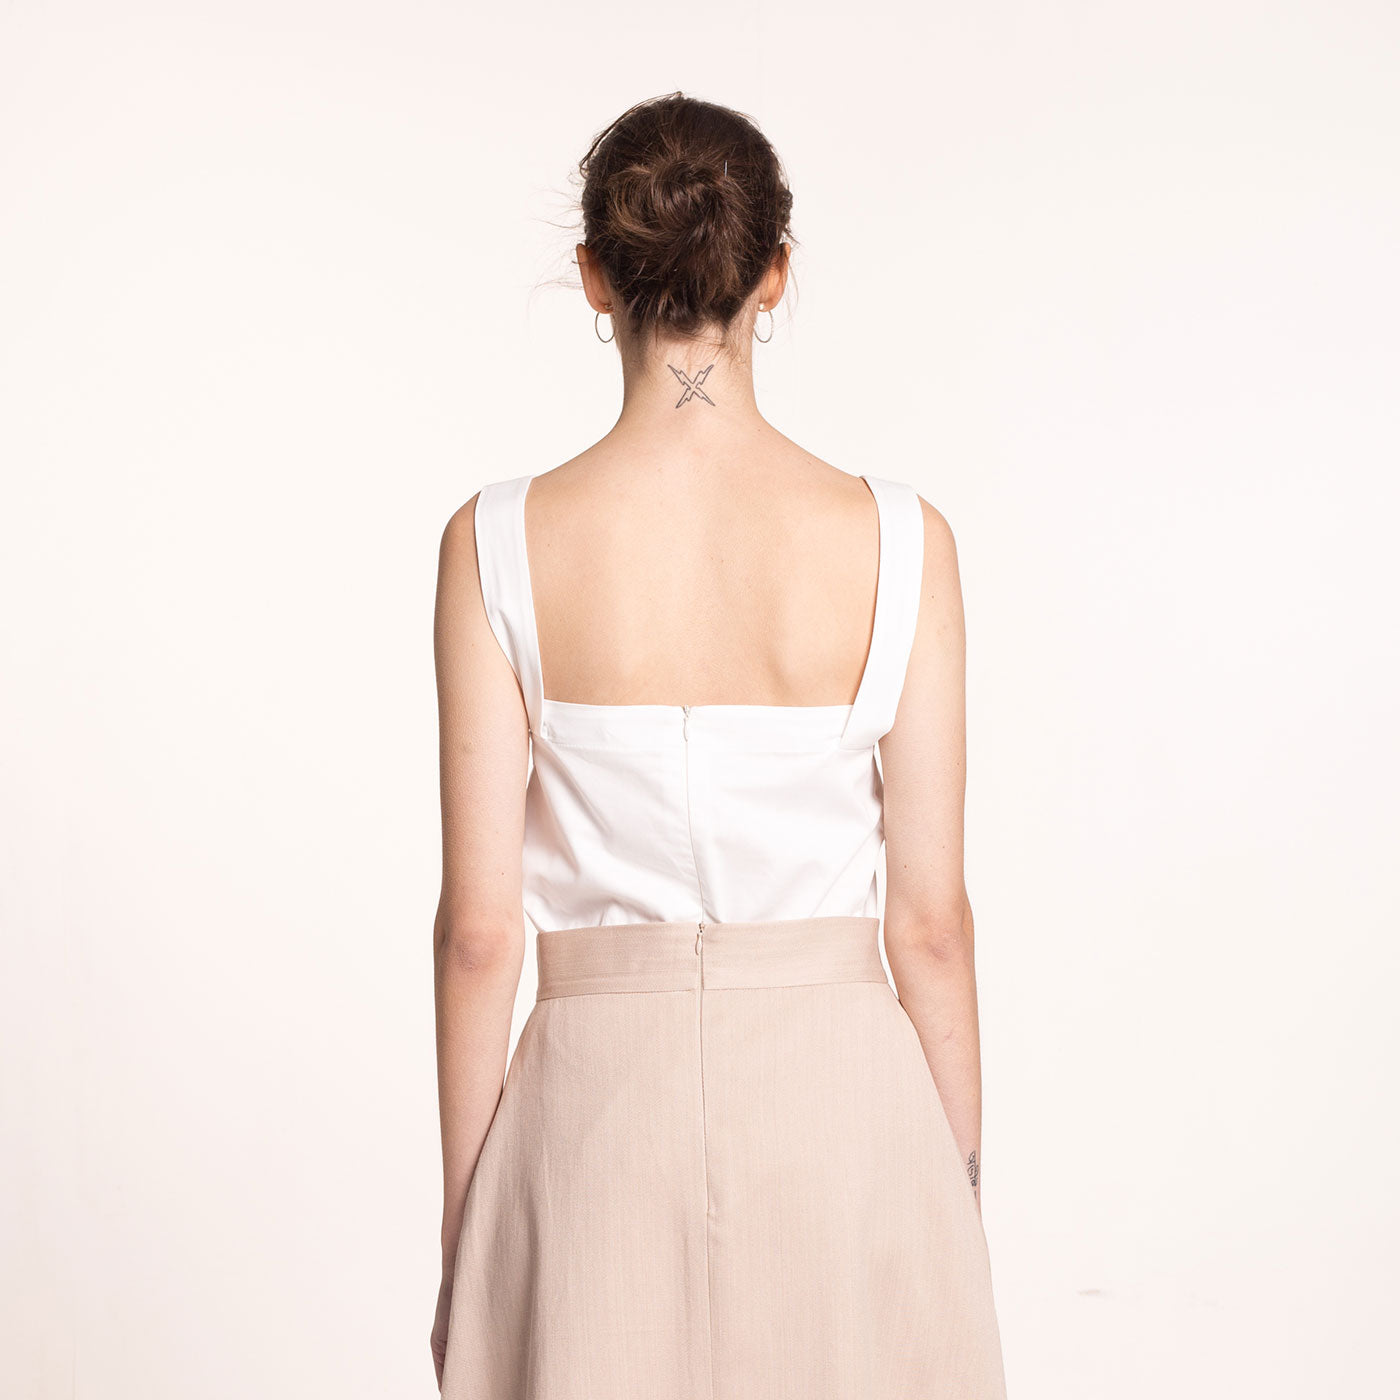 The model wears a white, sustainable, organic cotton, wide straps top, back view.